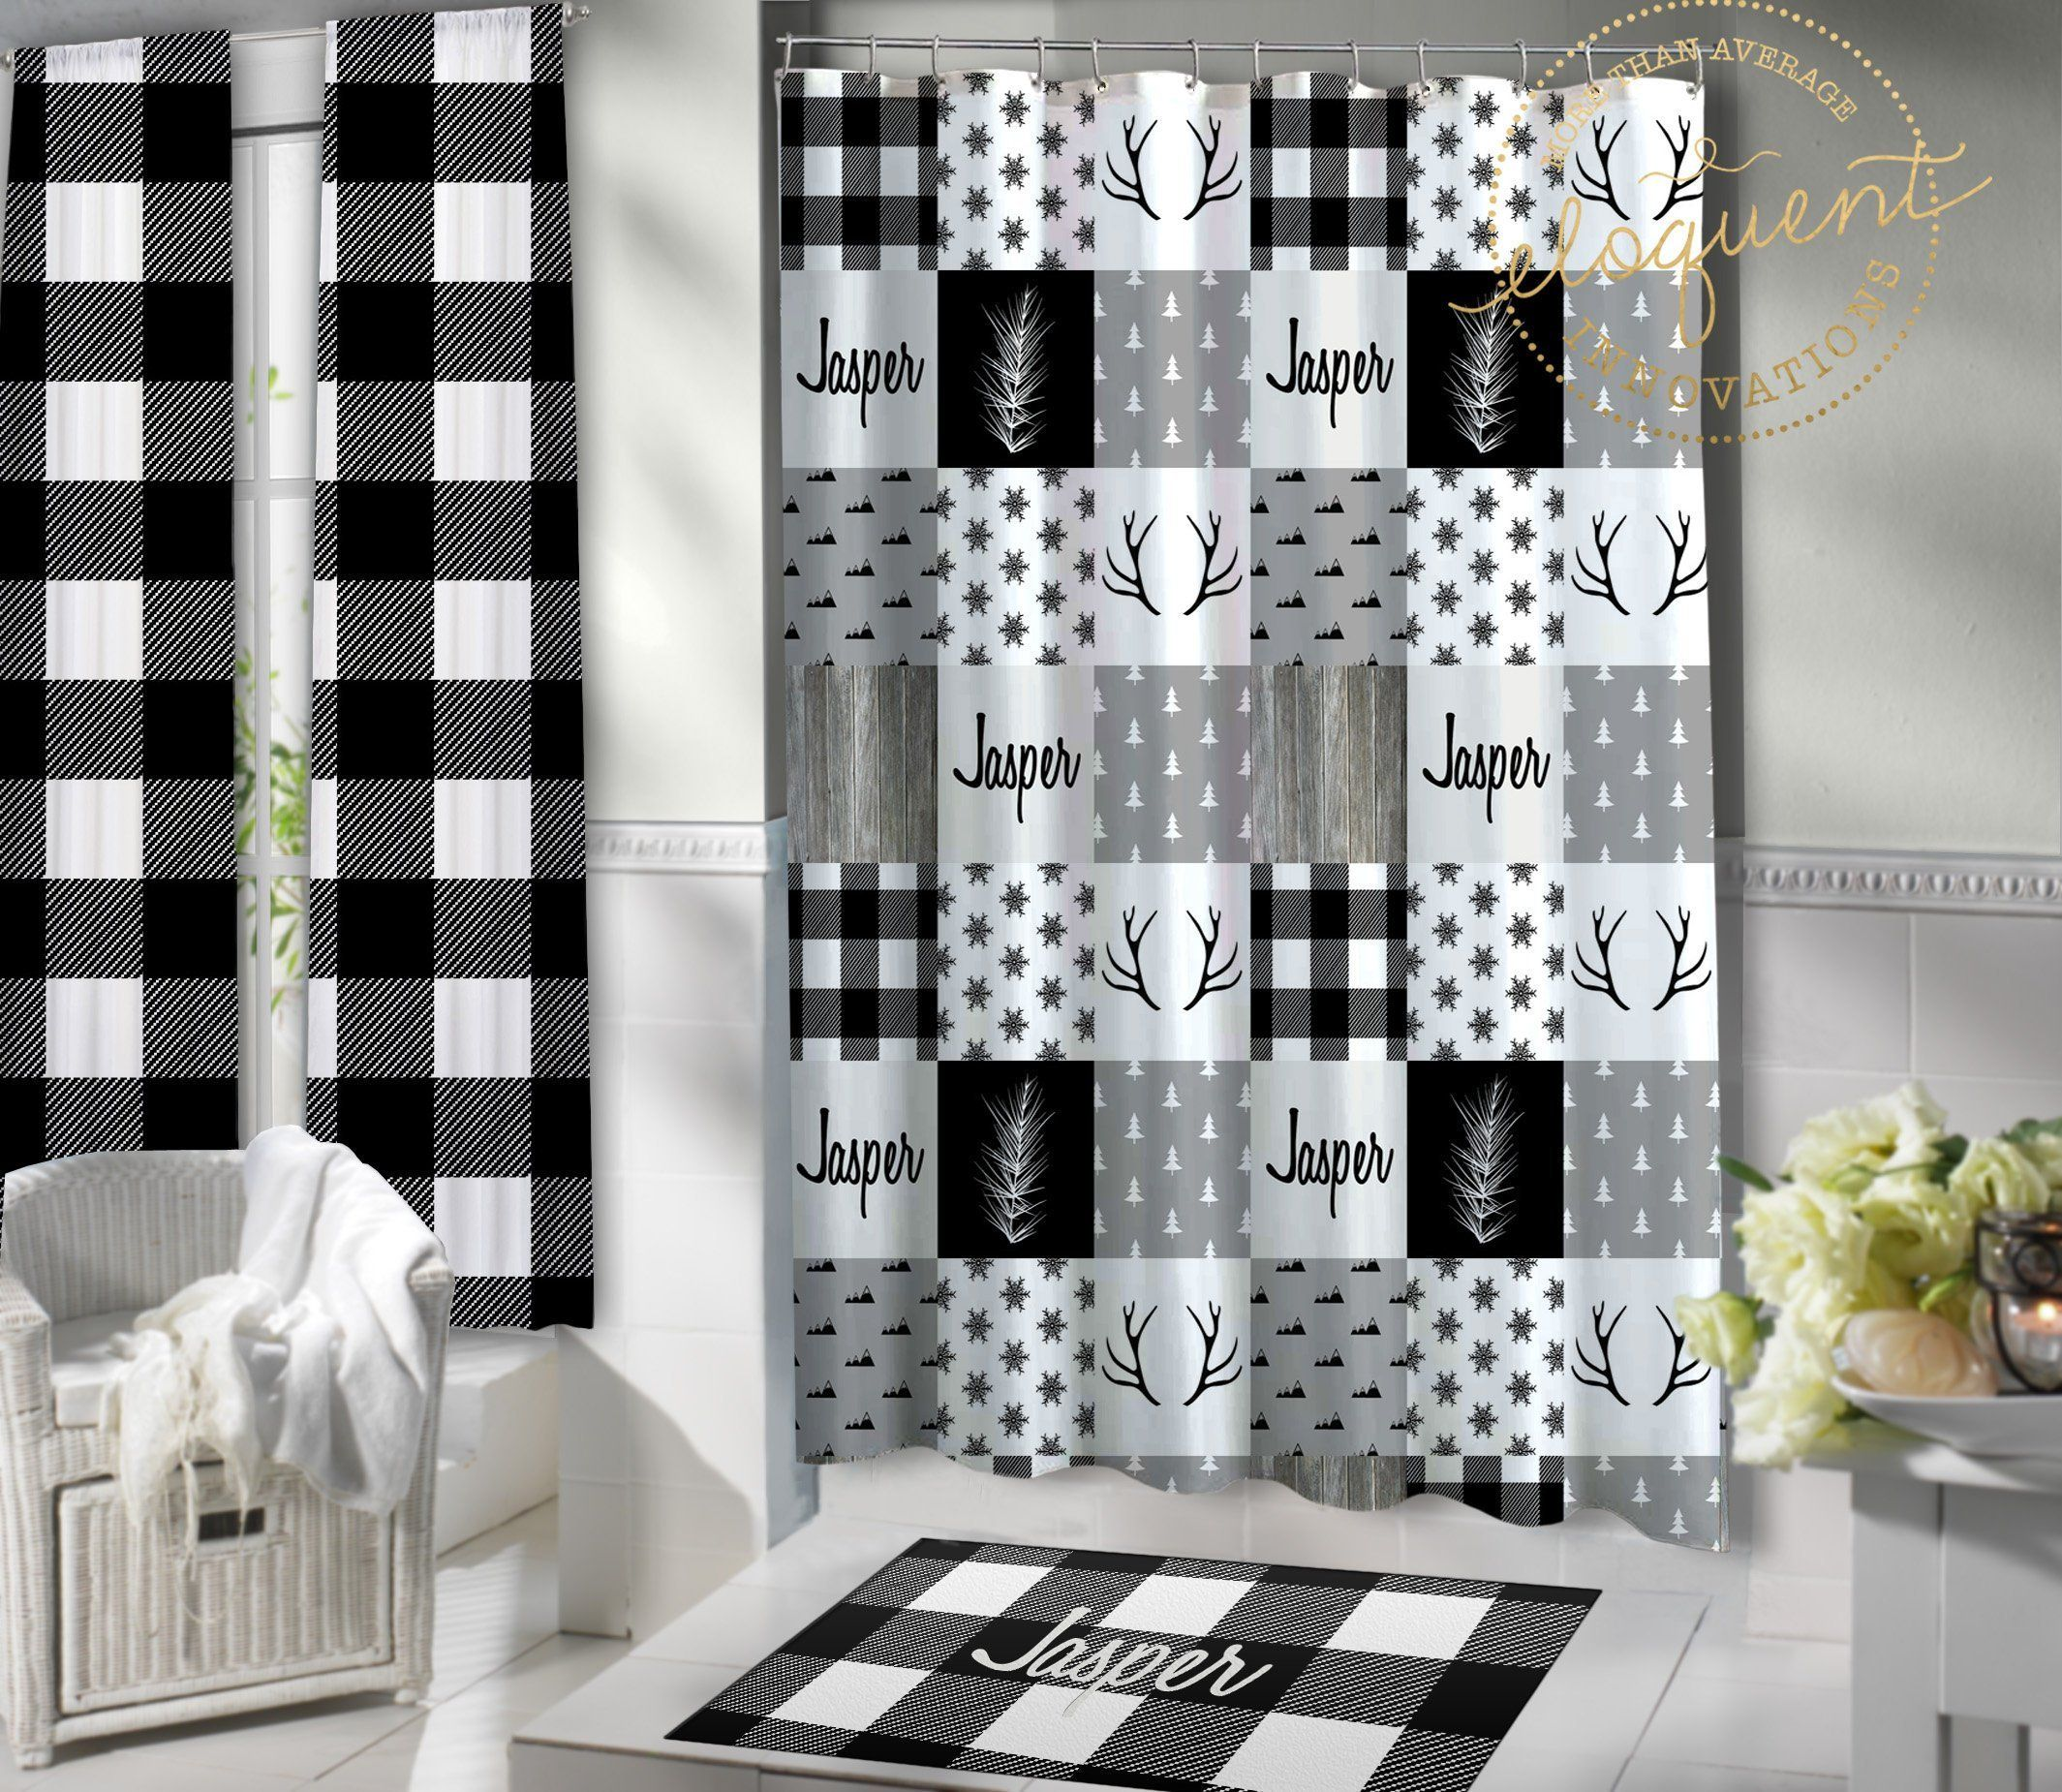 Lumberjack Shower Curtain Kids Black And White Plaid Themed Personalized With Name Woodland Deer Rug Fabric Extra Long Christmas 413 Fabric Shower Curtains Vinyl Shower Curtains Christmas Shower Curtains